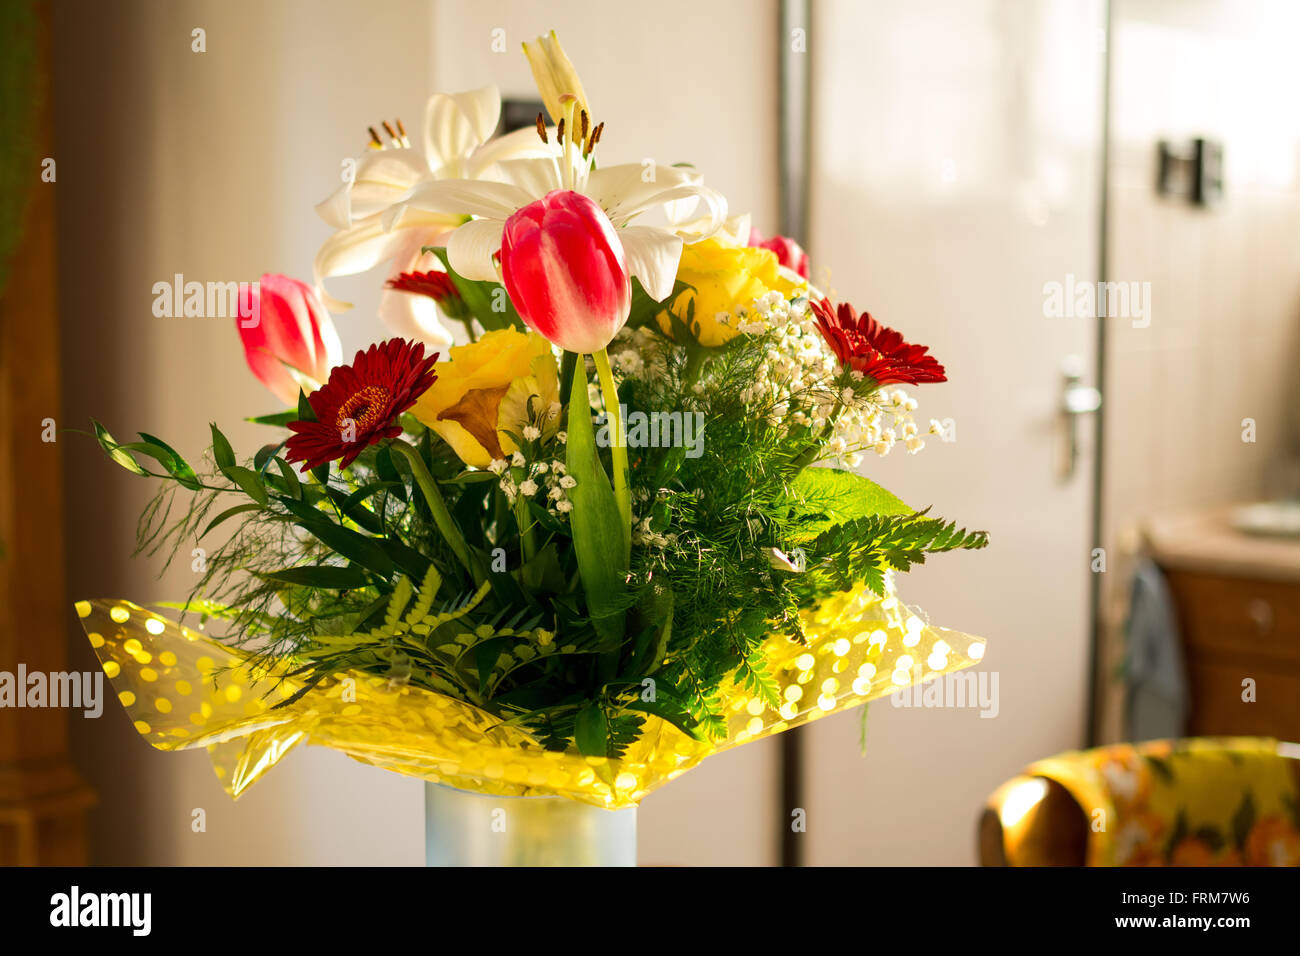 Flower bouquet with vase against blurry background. - Stock Image